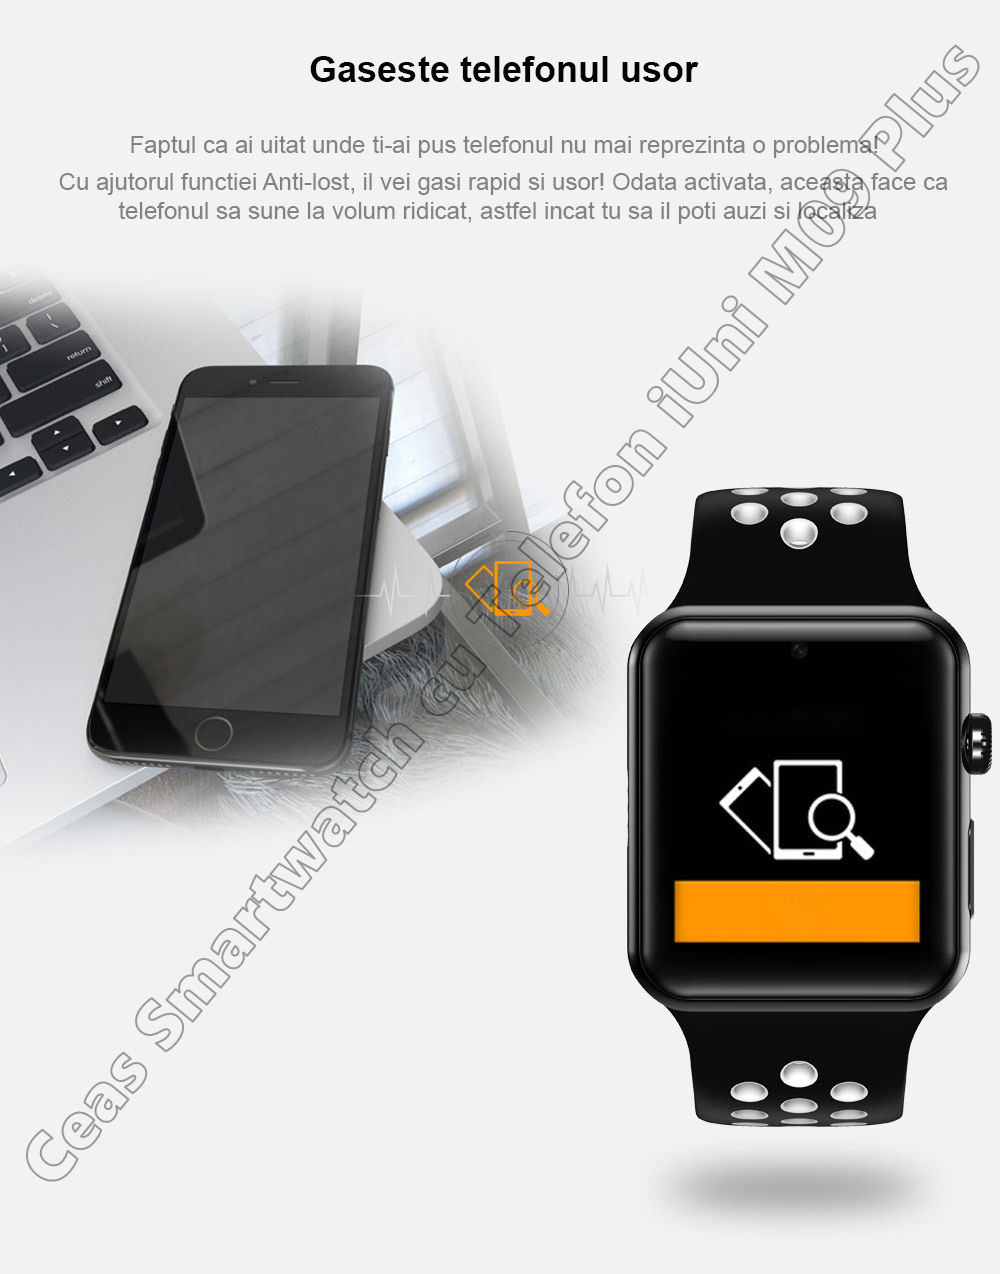 Ceas Smartwatch Telefon iUni DM09 Plus-6